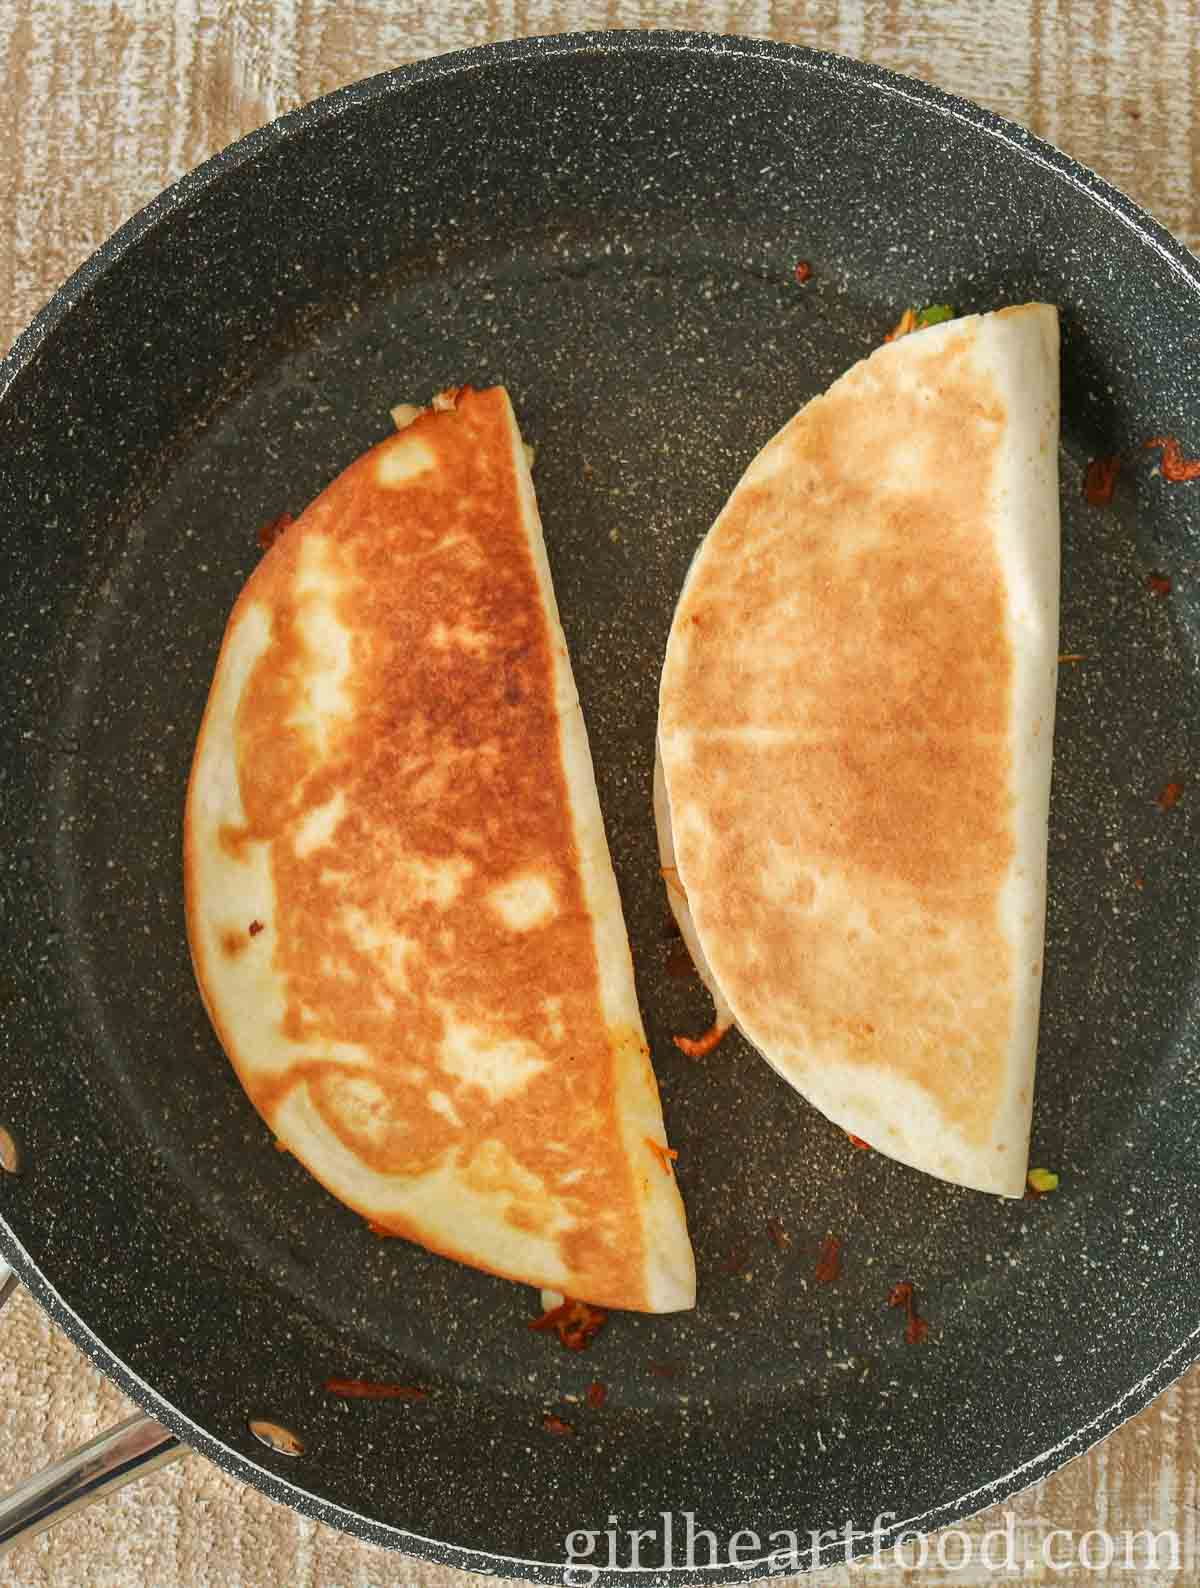 Two crispy quesadillas in a non-stick pan.